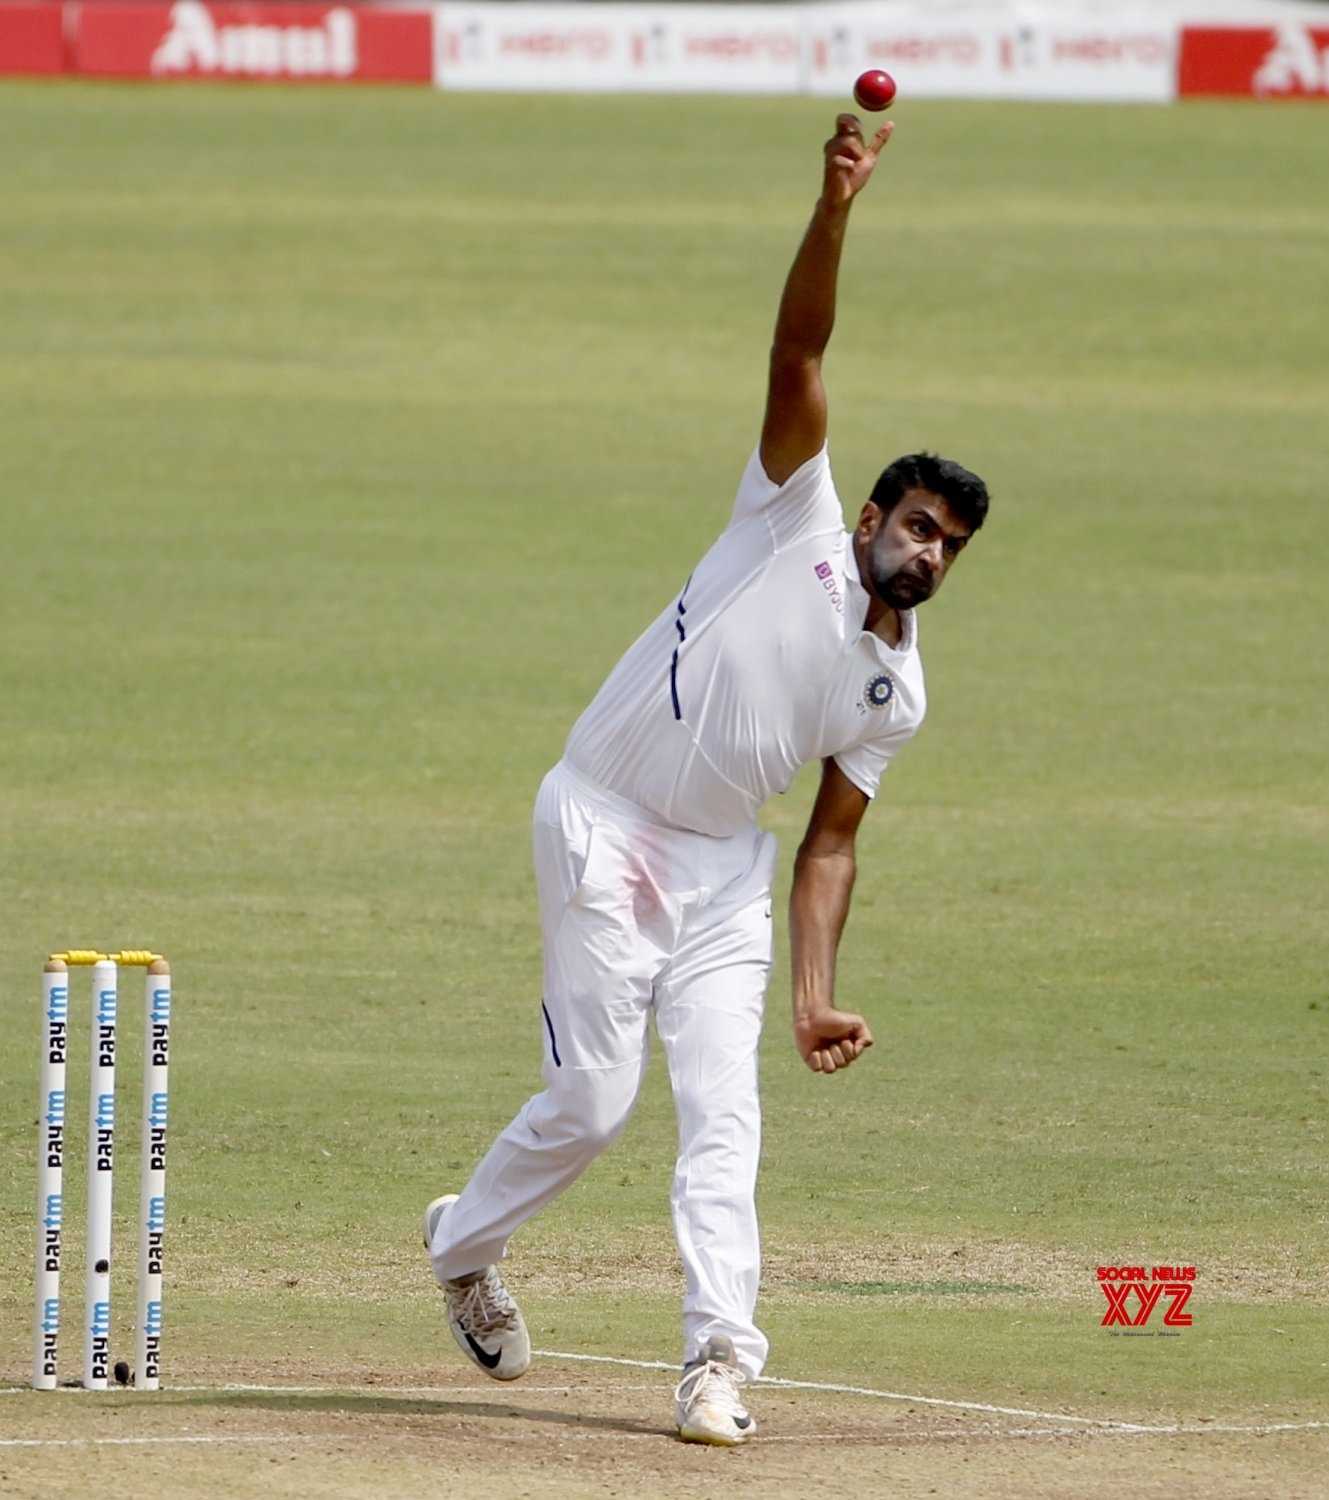 Pune: 2nd Test - India Vs South Africa - Day 3 (Batch - 8) #Gallery